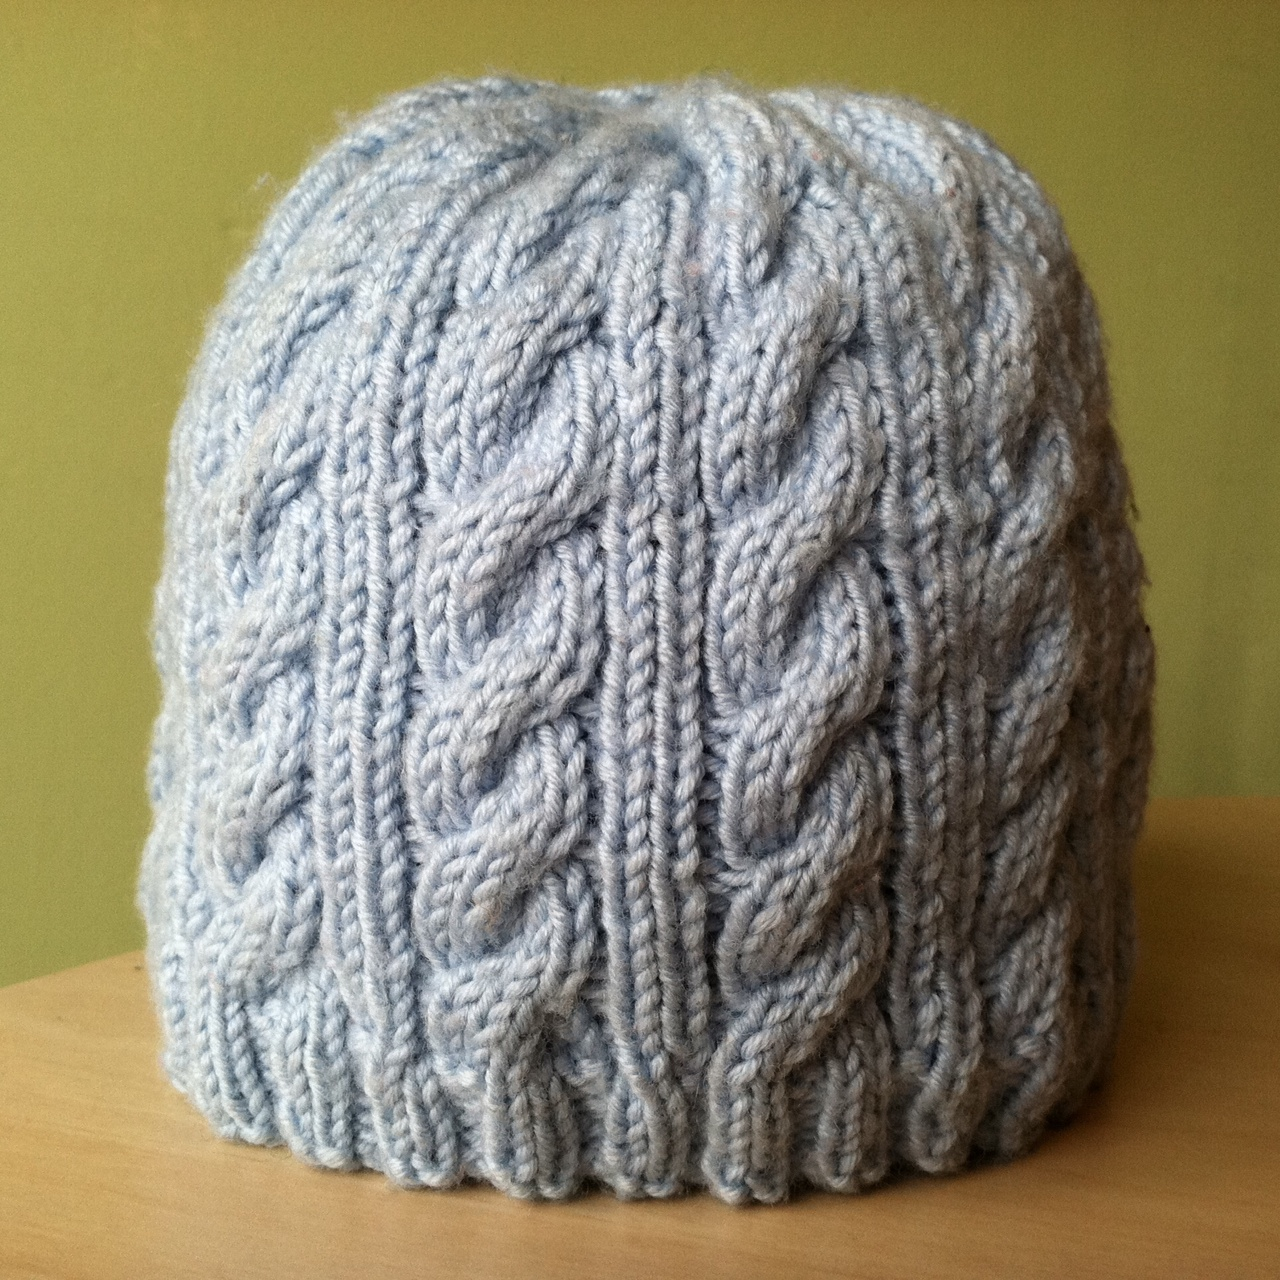 Knitting Pattern Aran Cable Hat : The Yarn Garden Blog: Upcoming Class: Easy Baby Cable Knit Hat